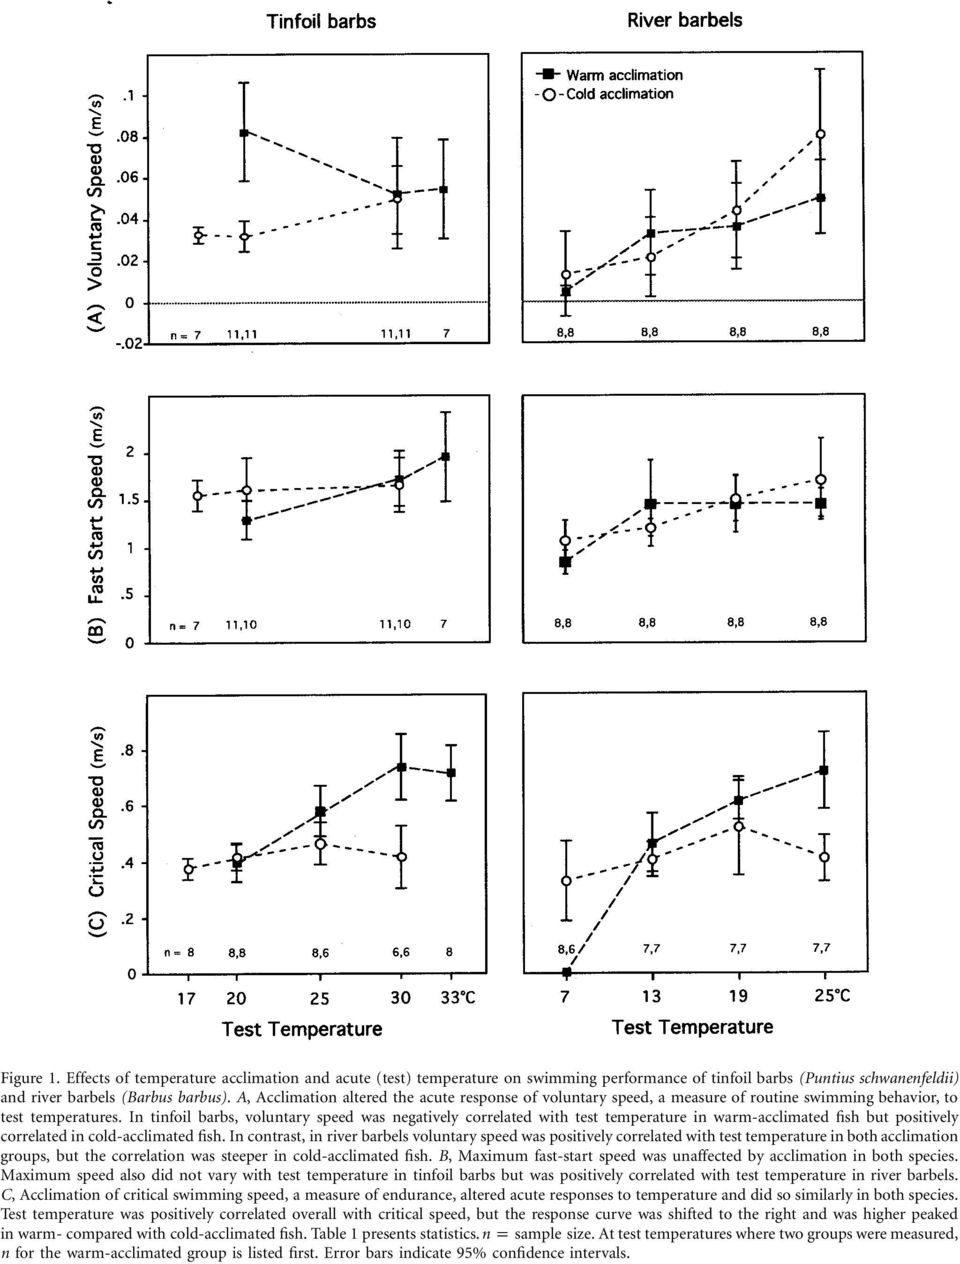 In tinfoil barbs, voluntary speed was negatively correlated with test temperature in warm-acclimated fish but positively correlated in cold-acclimated fish.